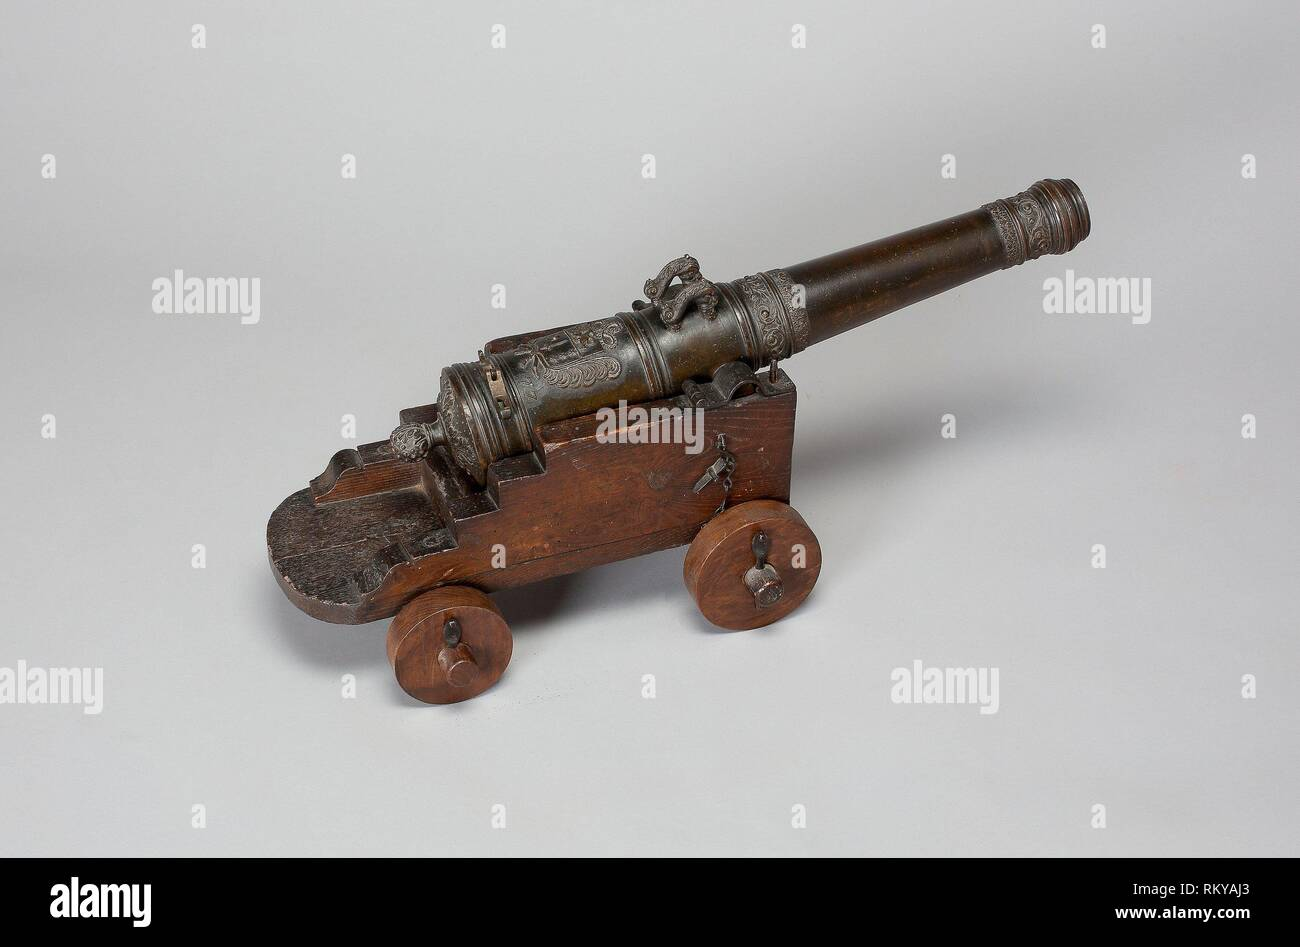 Model Field Cannon with Carriage - 1677 - French, possibly Dutch - Origin: France, Date: 1677, Medium: Bronze and wood, Dimensions: Length overall of - Stock Image